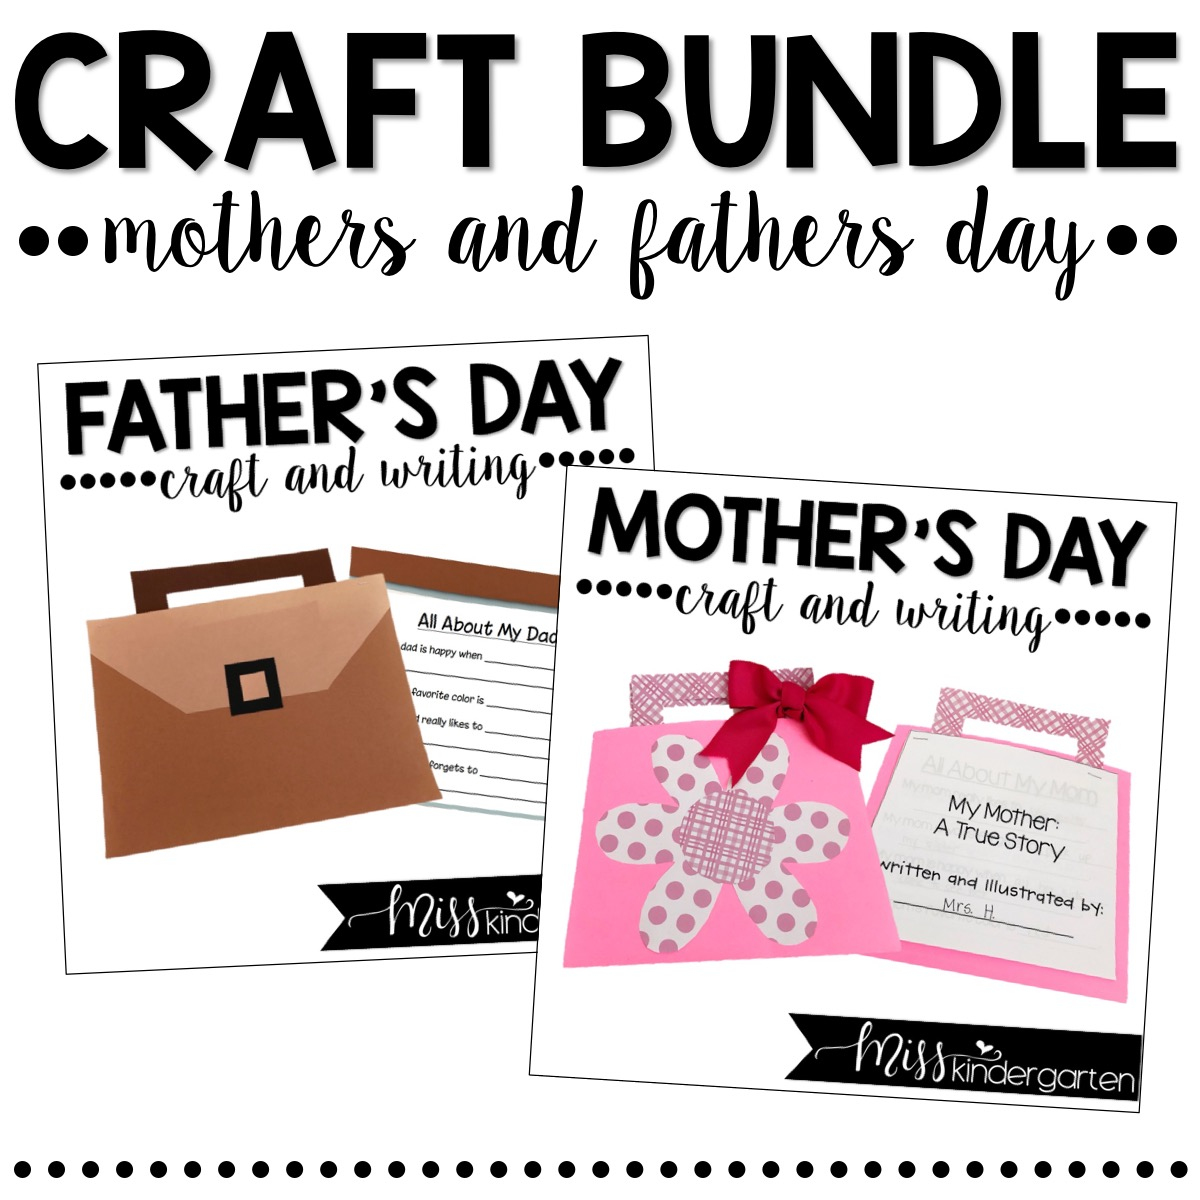 Mother's Day and Father's Day gift ideas made by students